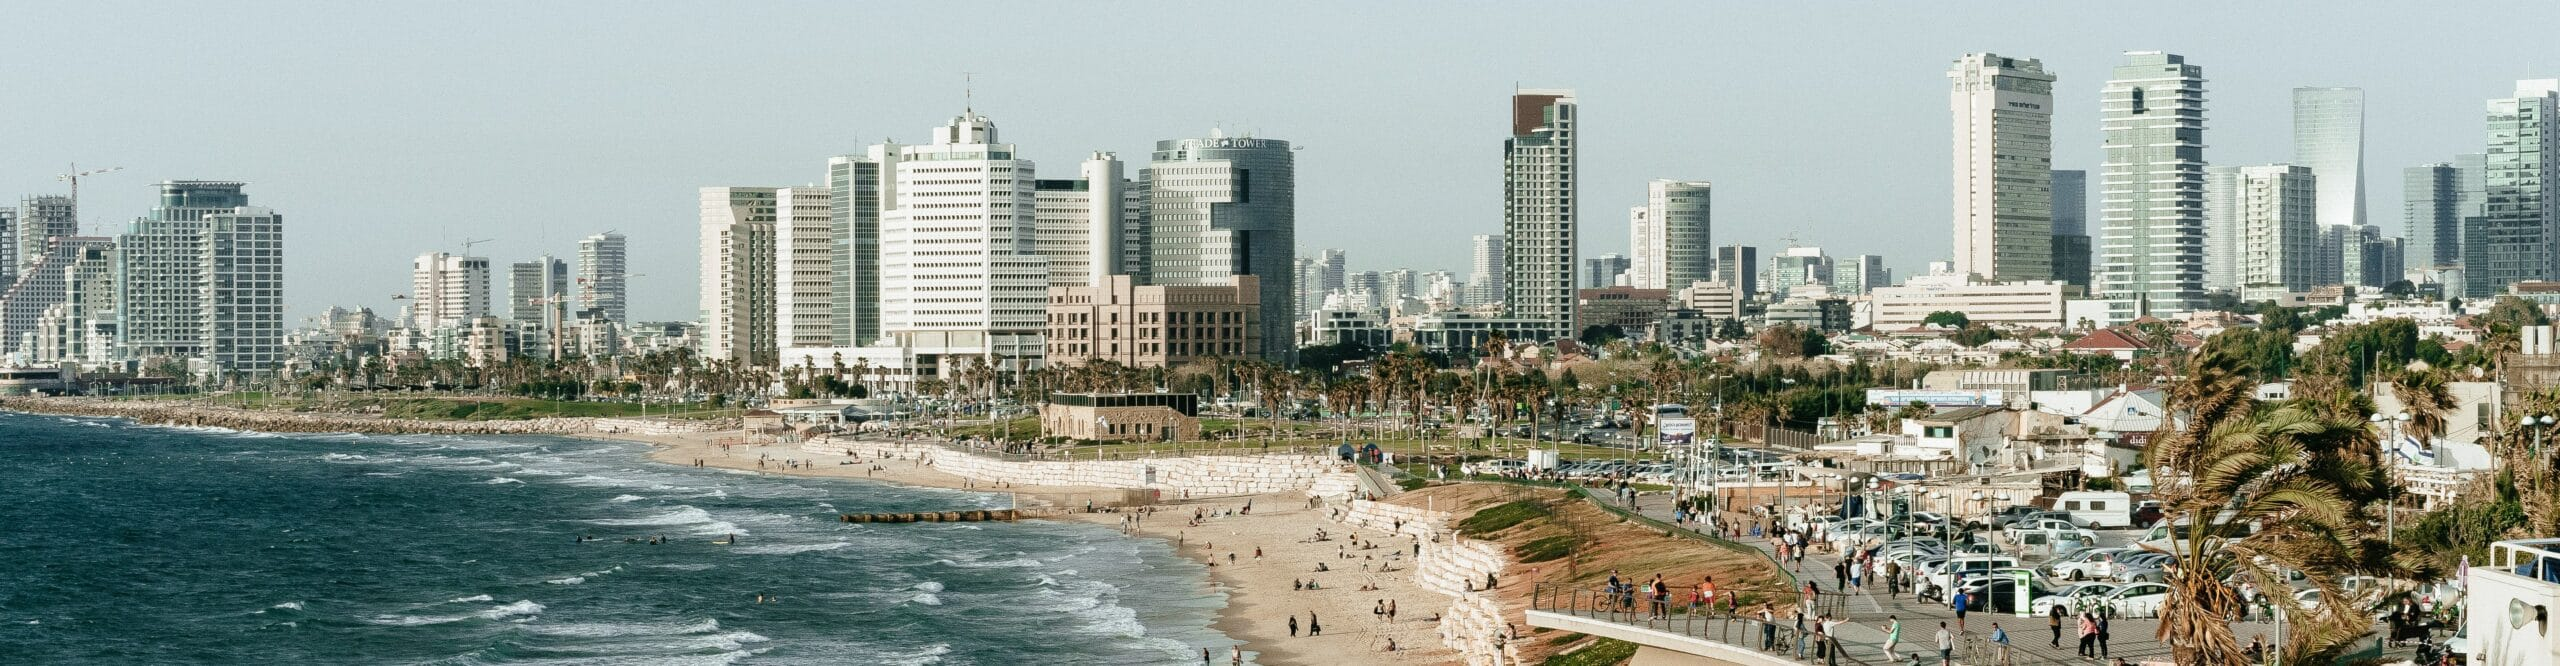 Pilgrims will fly into Tel Aviv to arrive at the Holy Land, planning to reopen midsummer of 2021